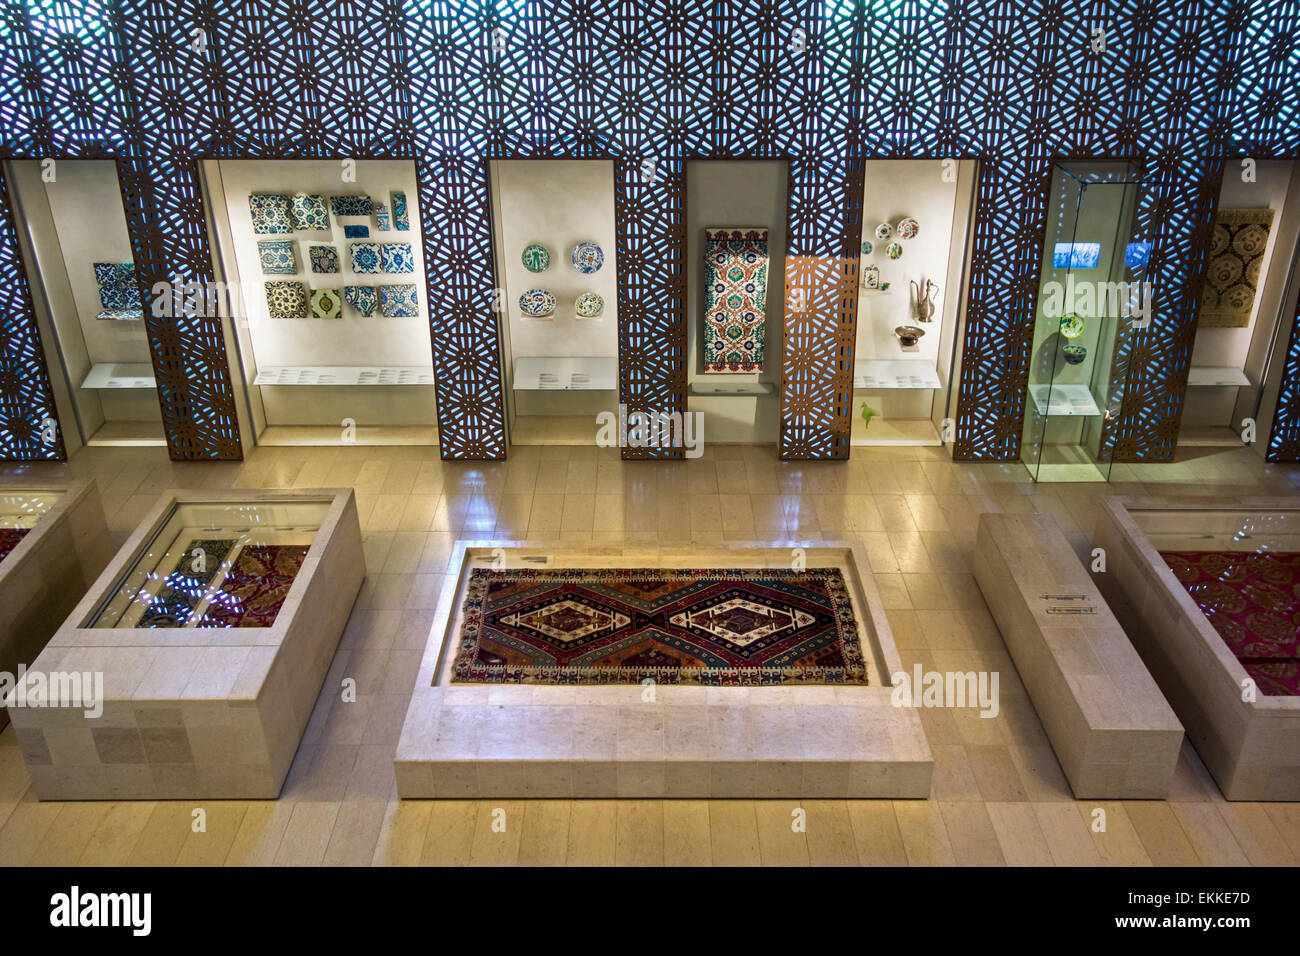 Carpets from the Islamic world in the Cinquantenaire Museum / Jubelparkmuseum in Brussels, Belgium - Stock Image